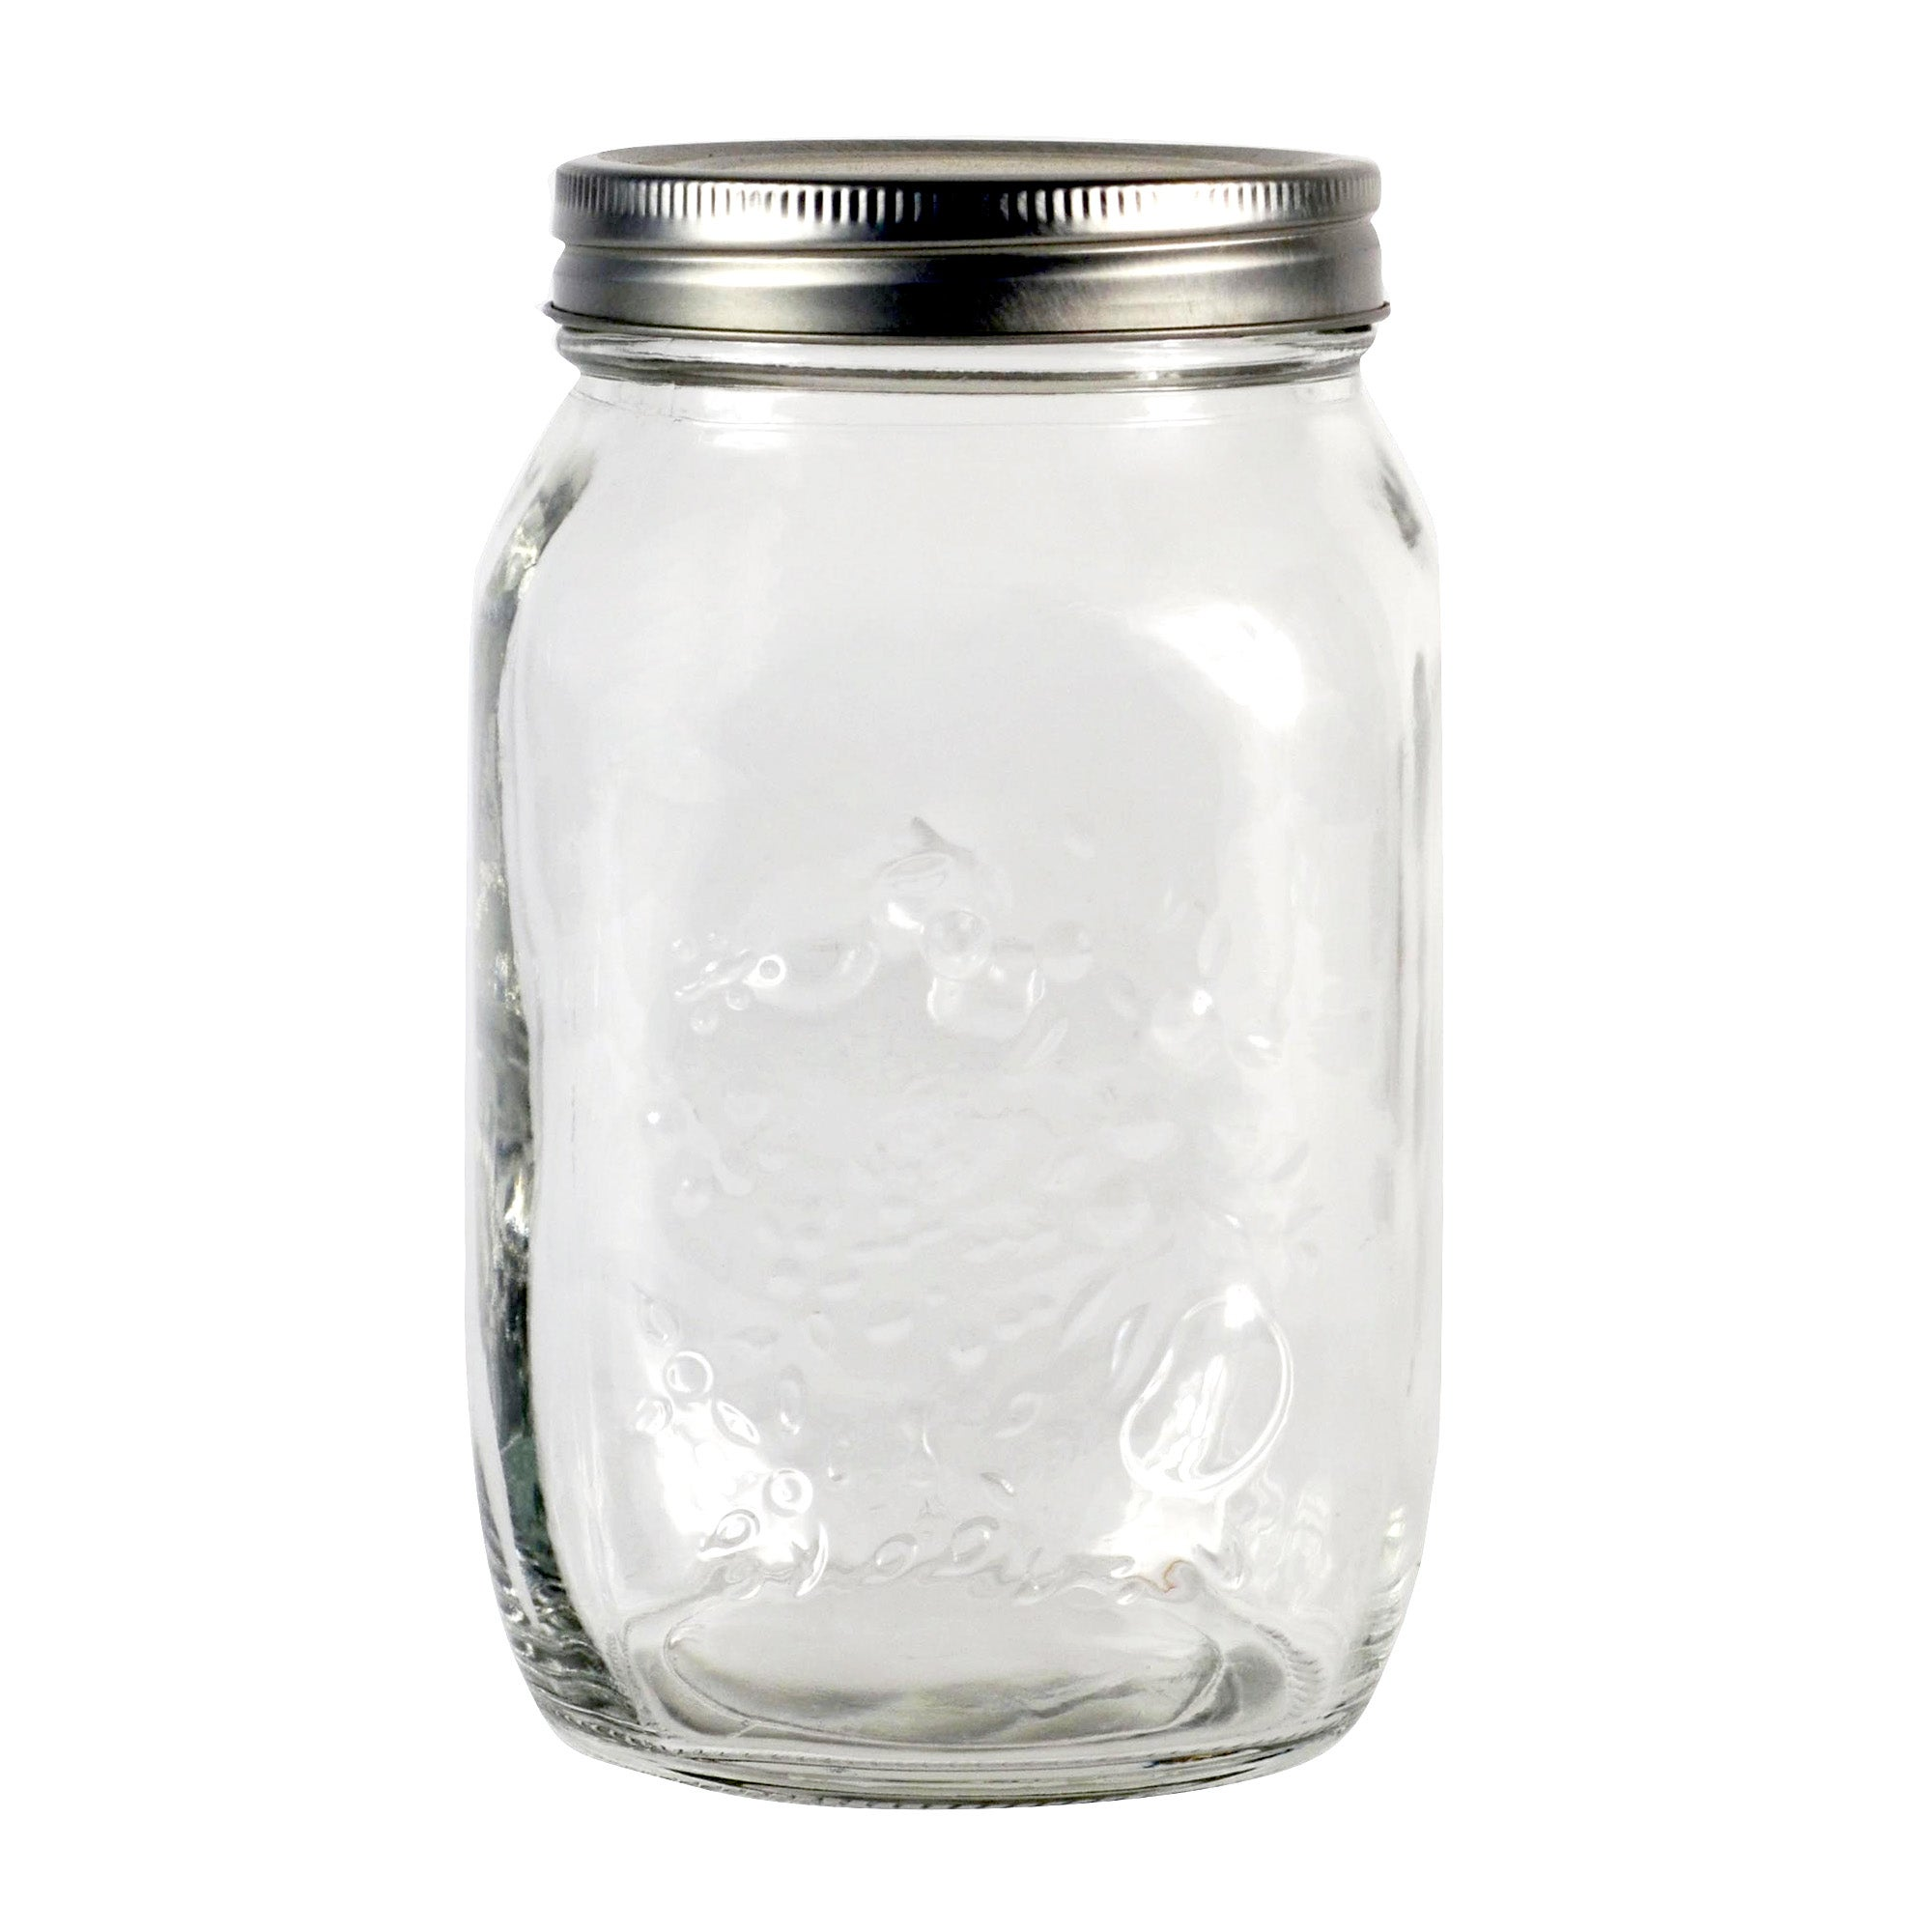 Farmstead Collection Jar